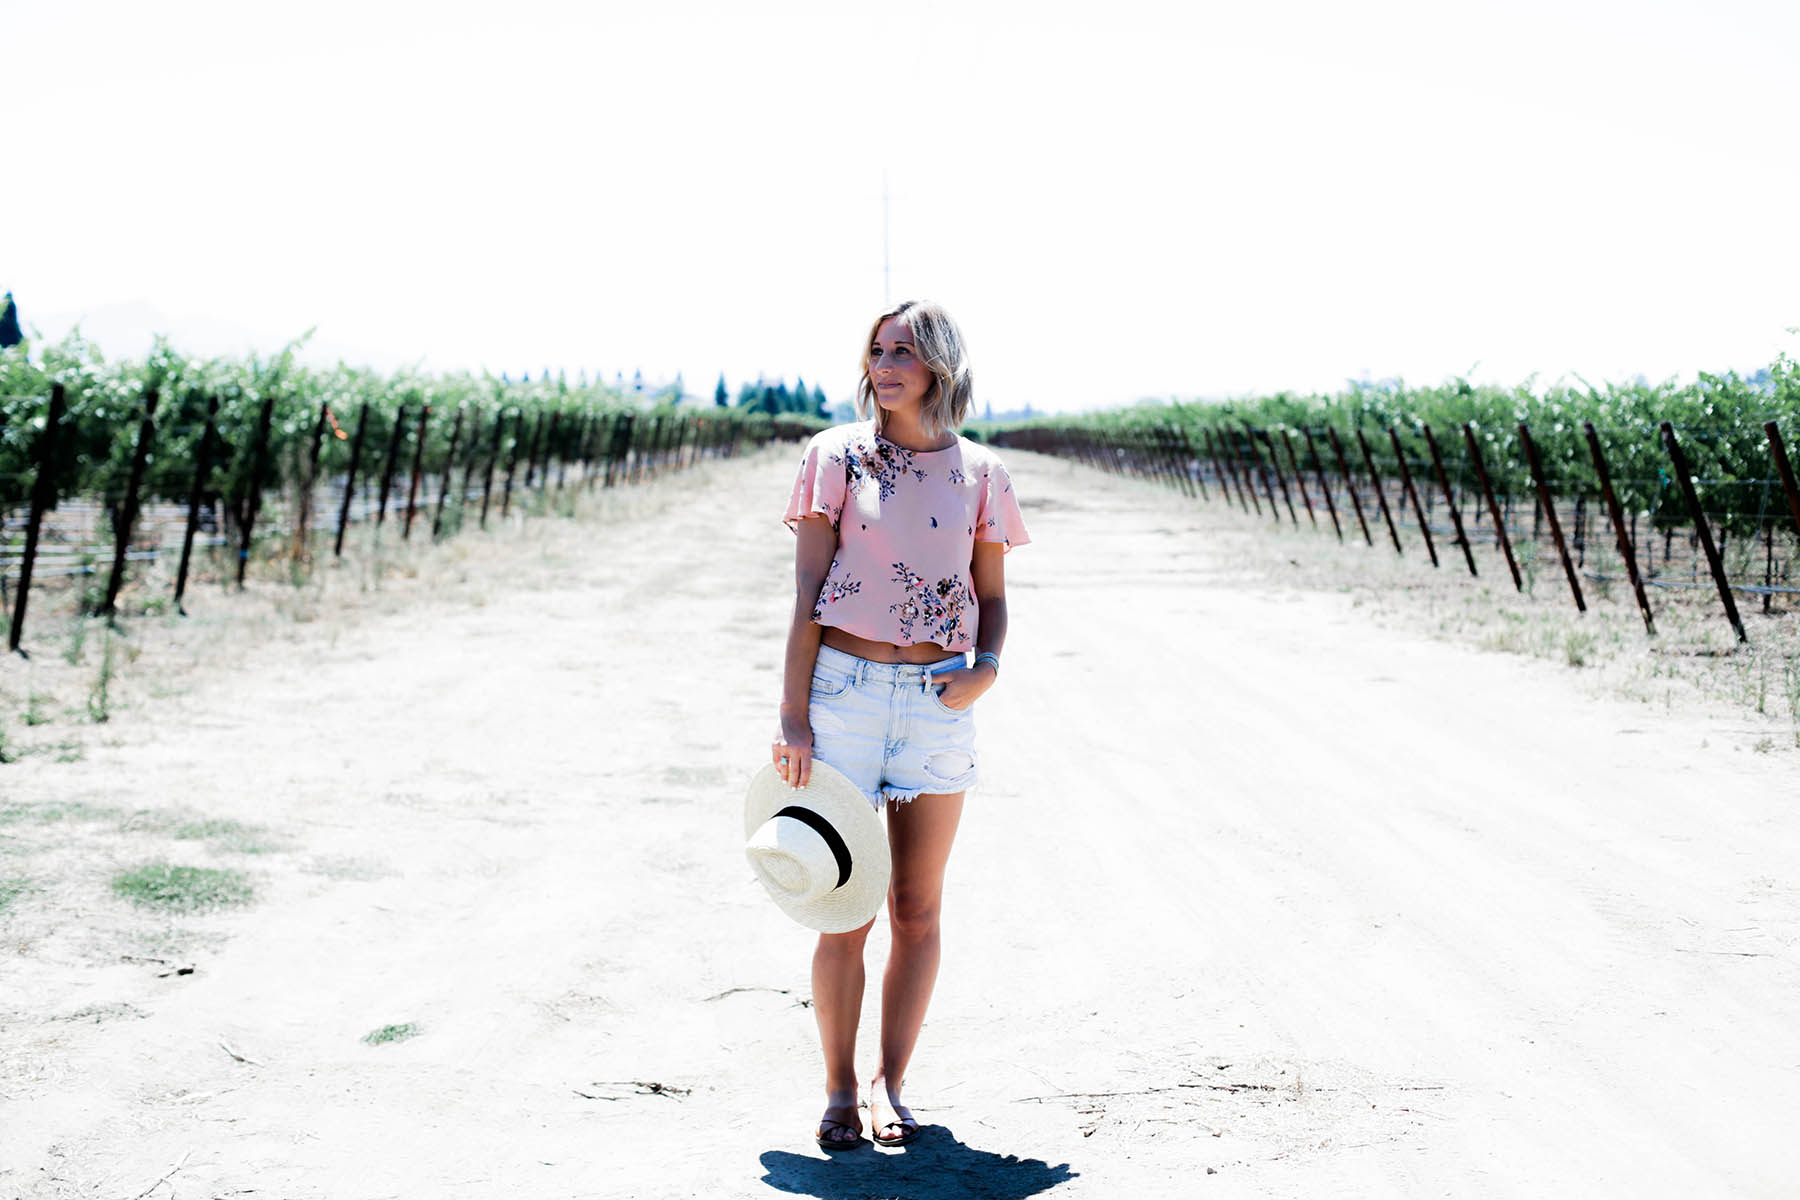 Amanda Holstein in Urban Outfitters crop top, panama hat, and denim shorts at Napa vineyard